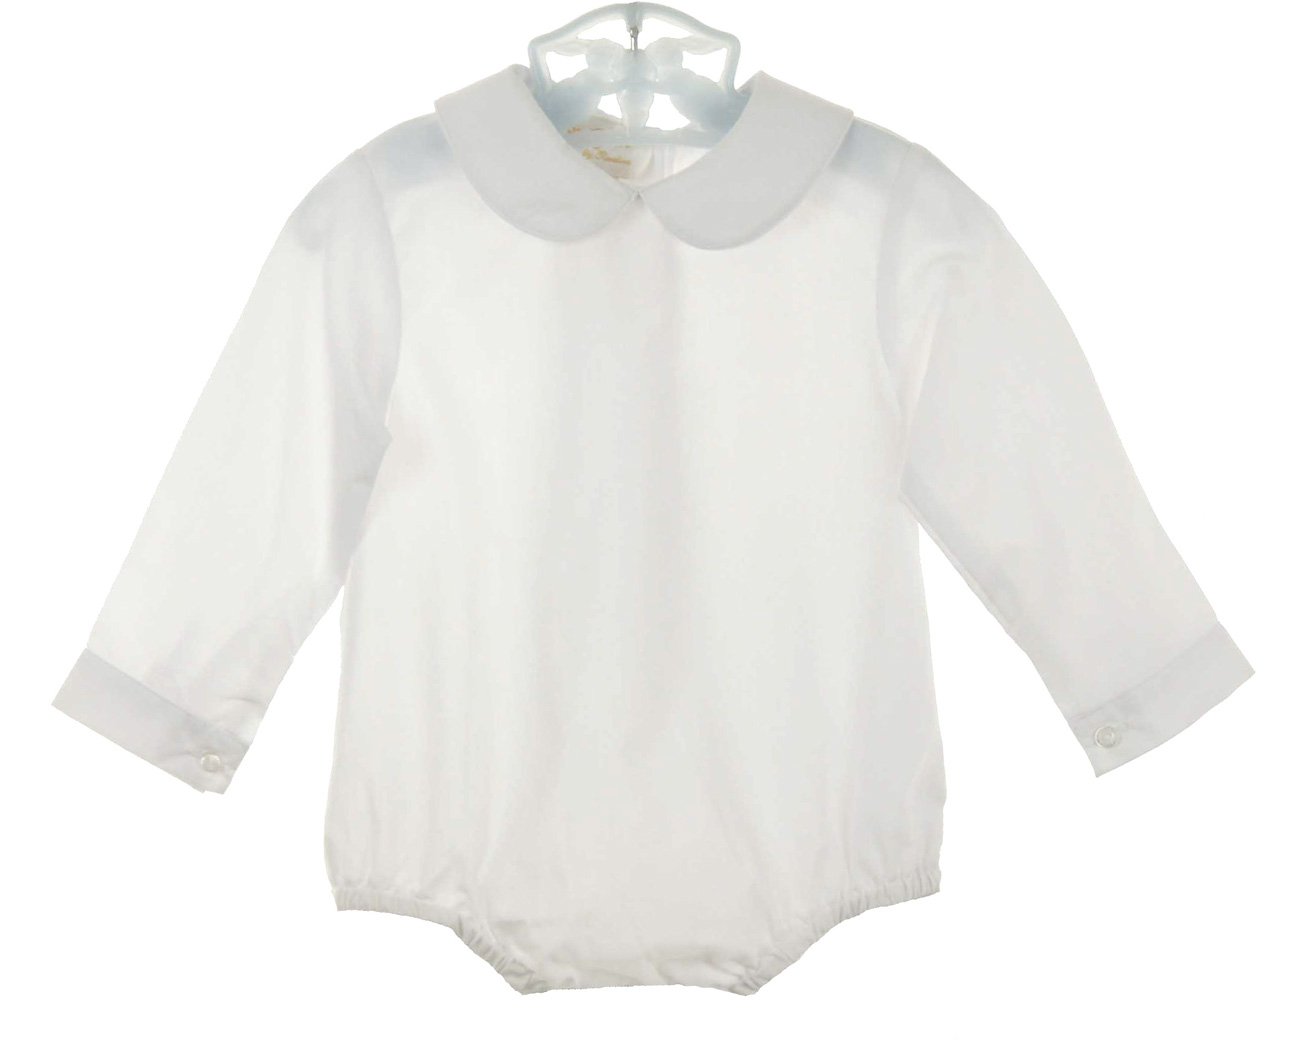 Rosalina Boys White Long Sleeved Shirt With Crotch Snapswhite Long